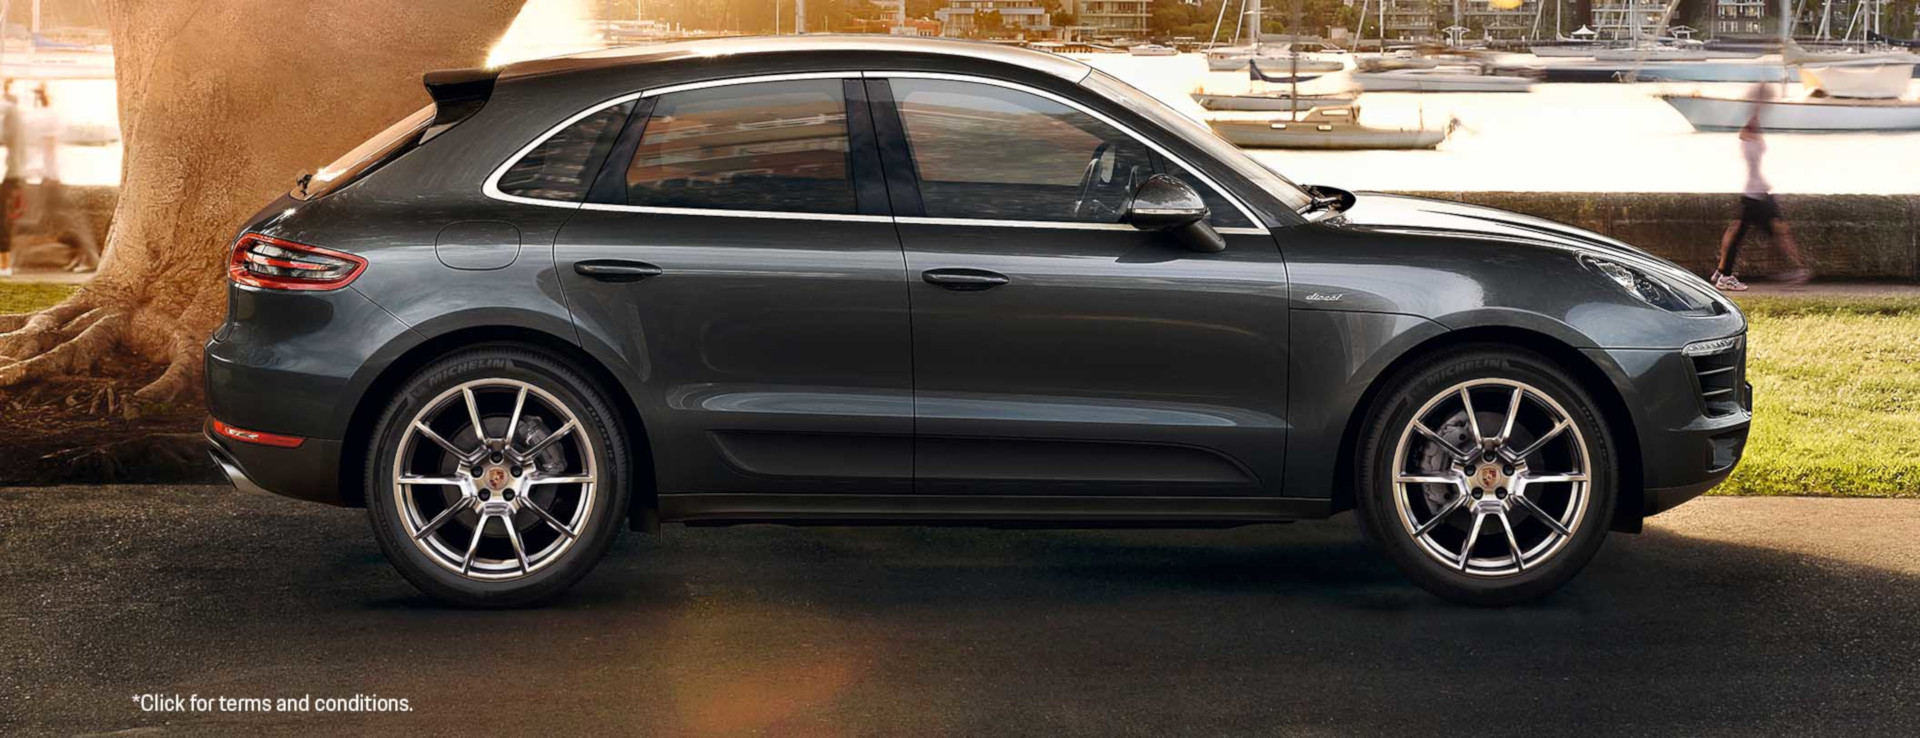 The Macan S Diesel. From $1,170 per month*.